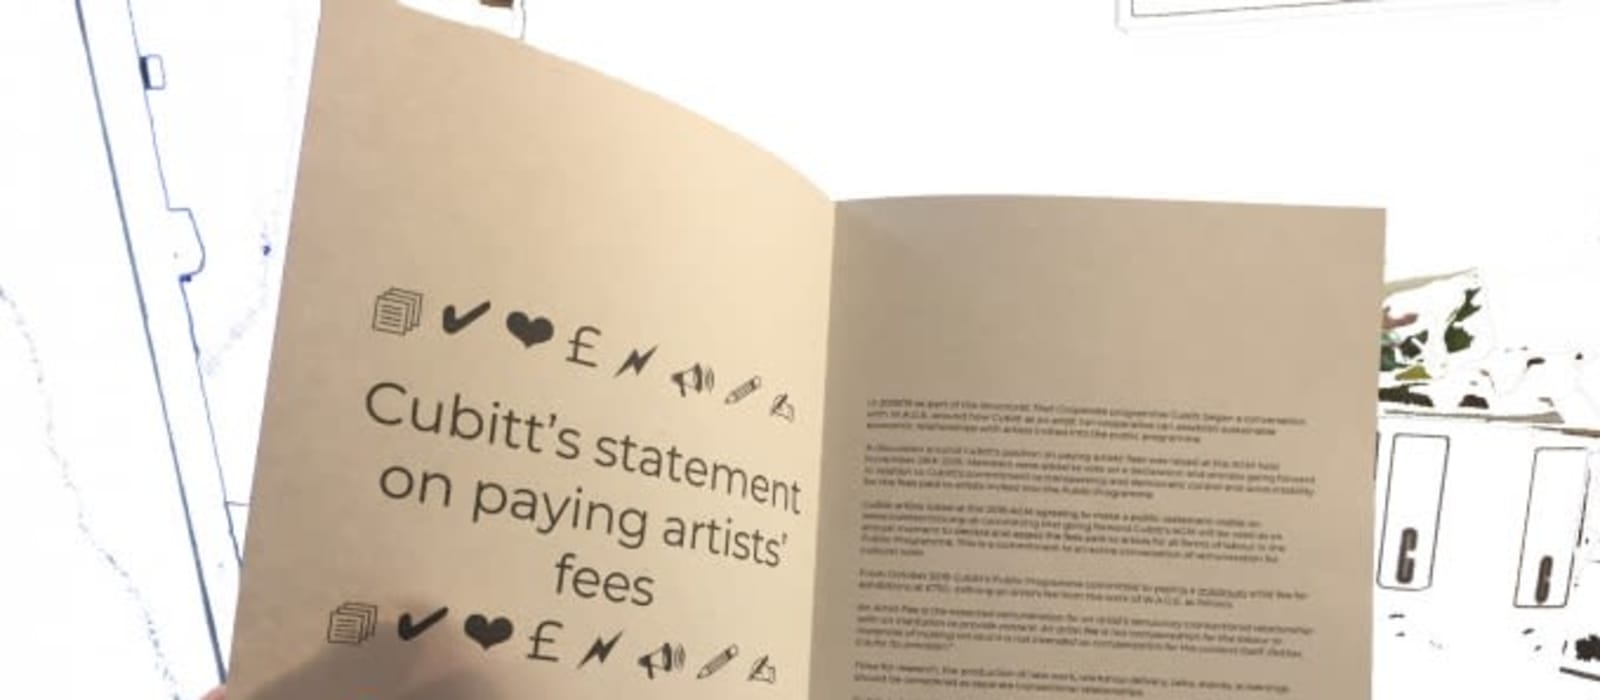 Cubitt's statement on paying artists' fees